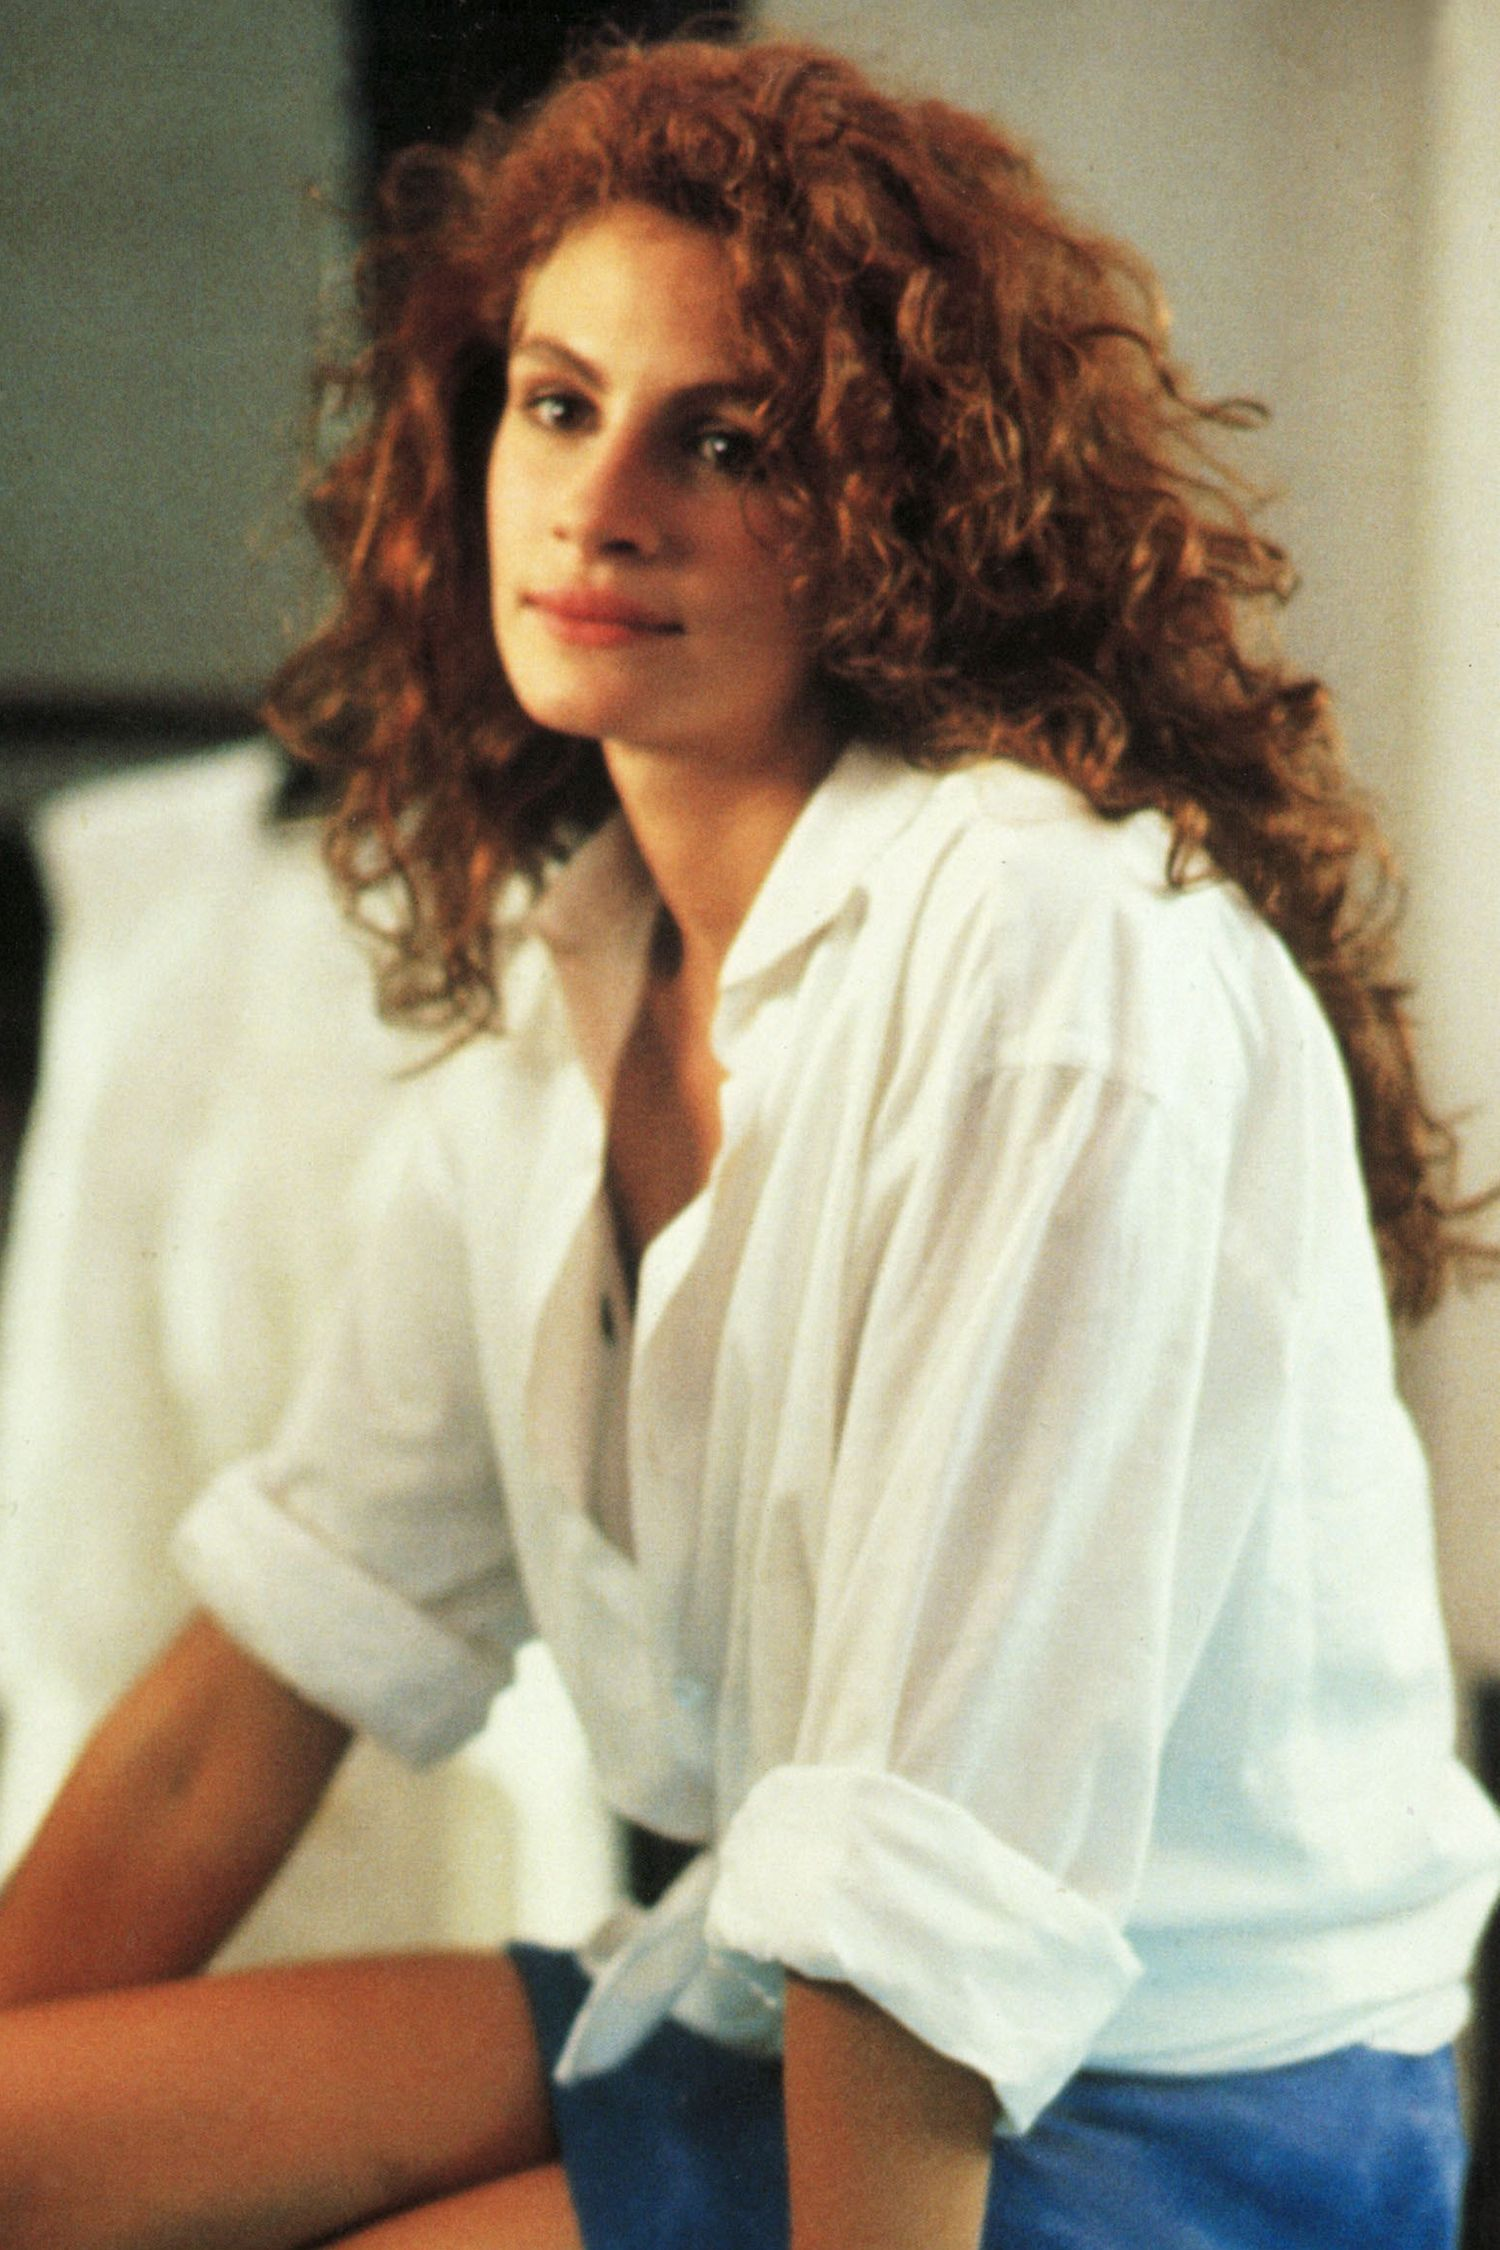 Julia Roberts Pretty Woman white shirt